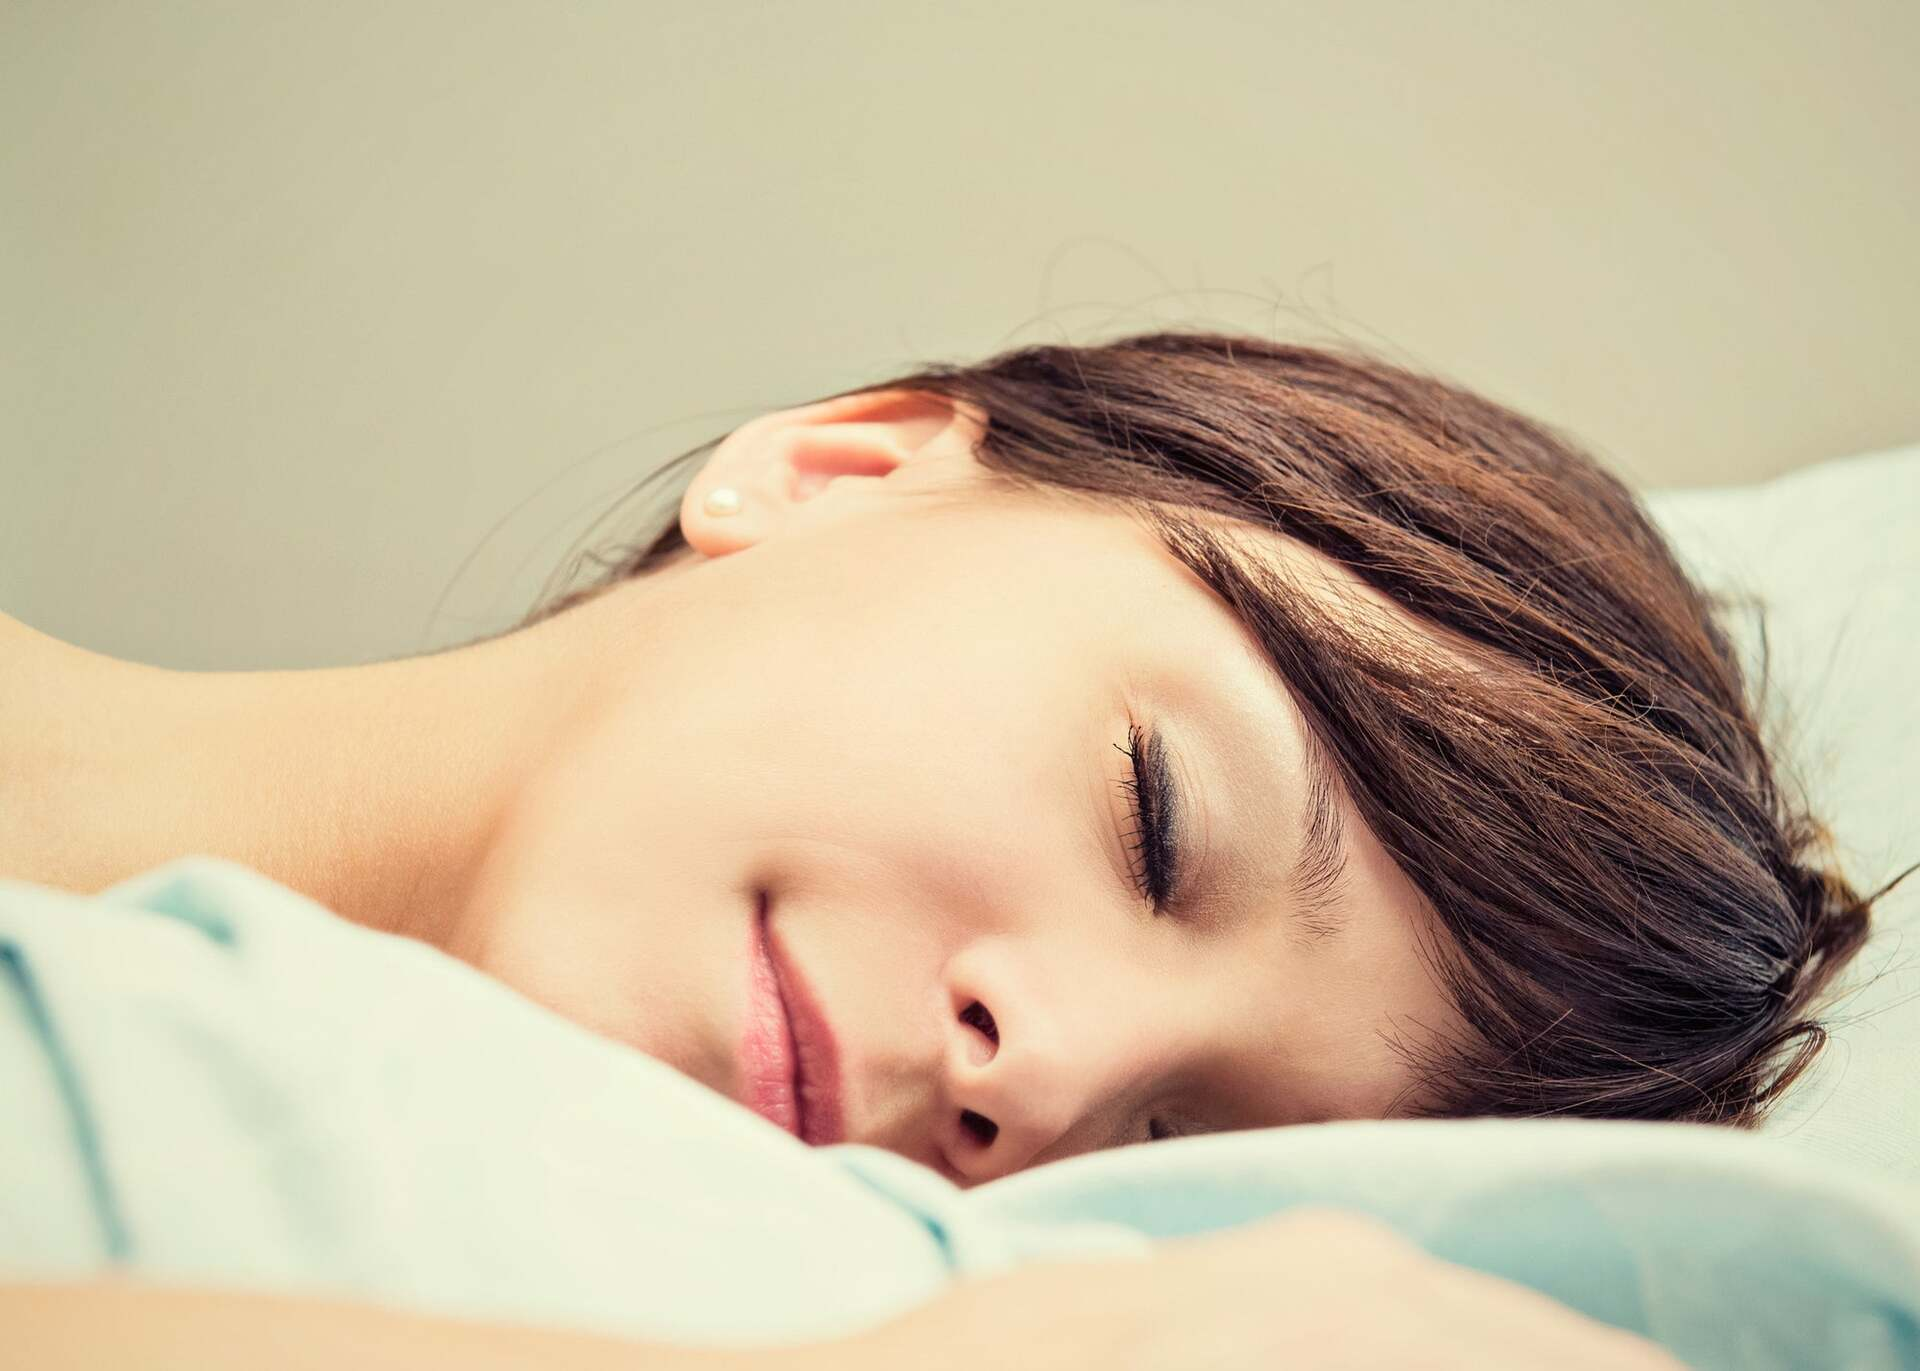 How To Get A Good Night's Sleep: The 8 Best Rules